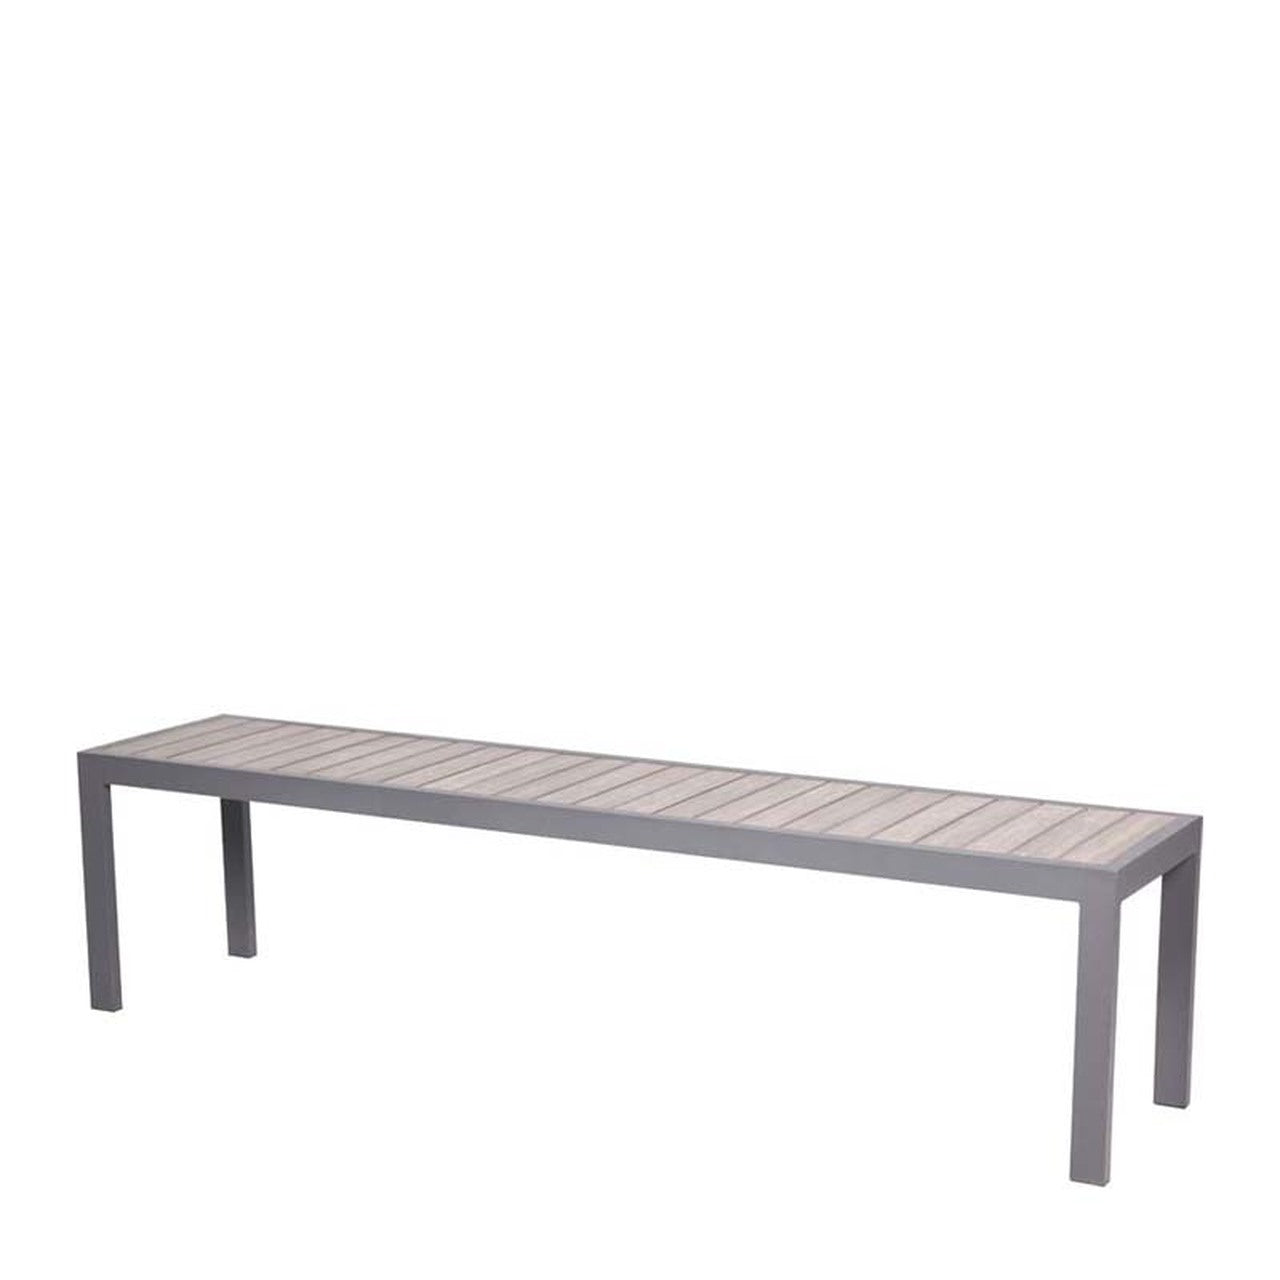 Emma bench - ContractWorld Furniture